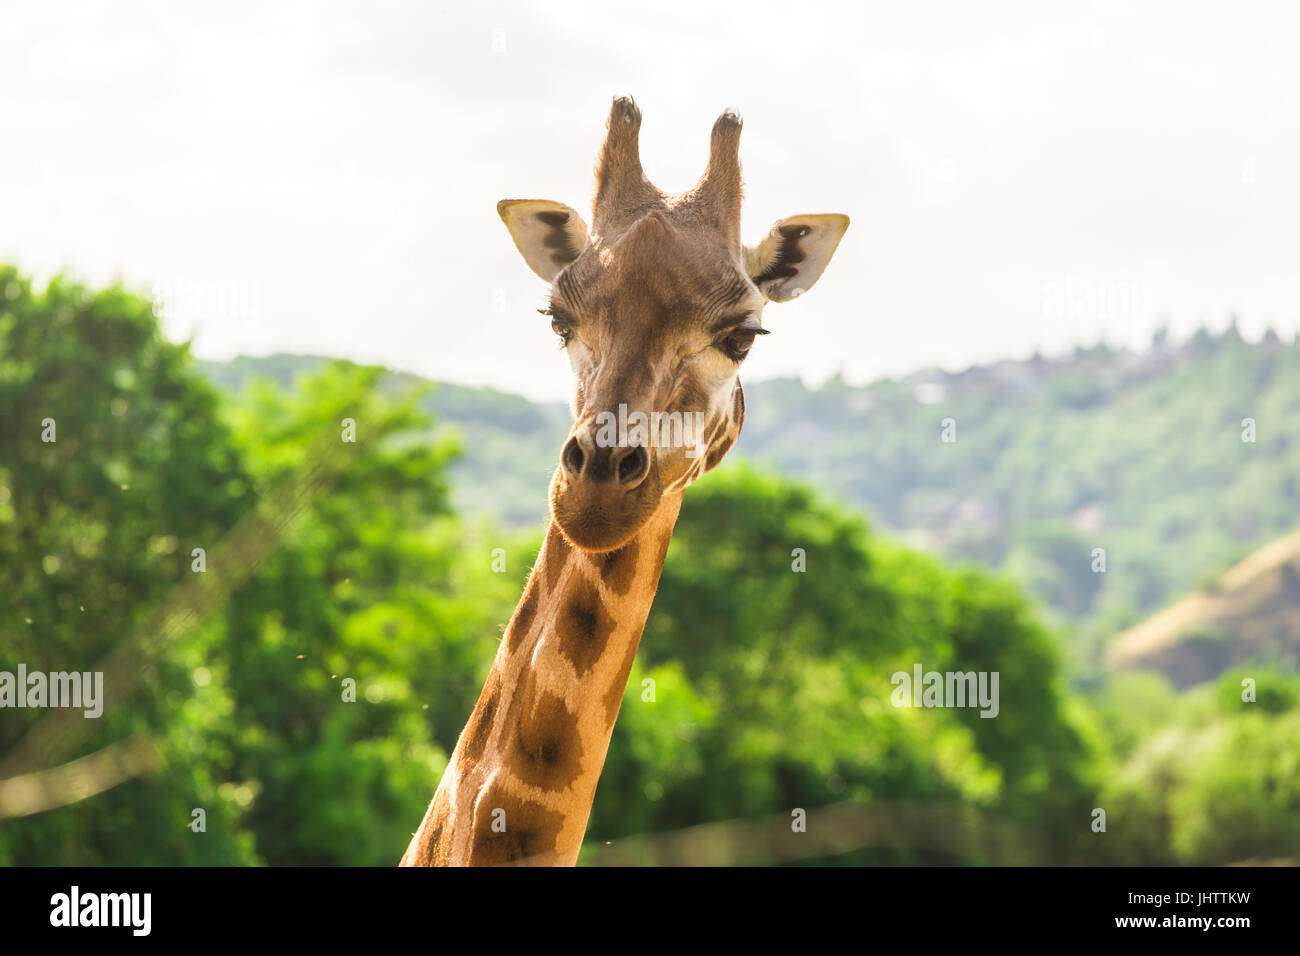 Close-up of a giraffe in front of some green trees. With space for text. - Stock Image